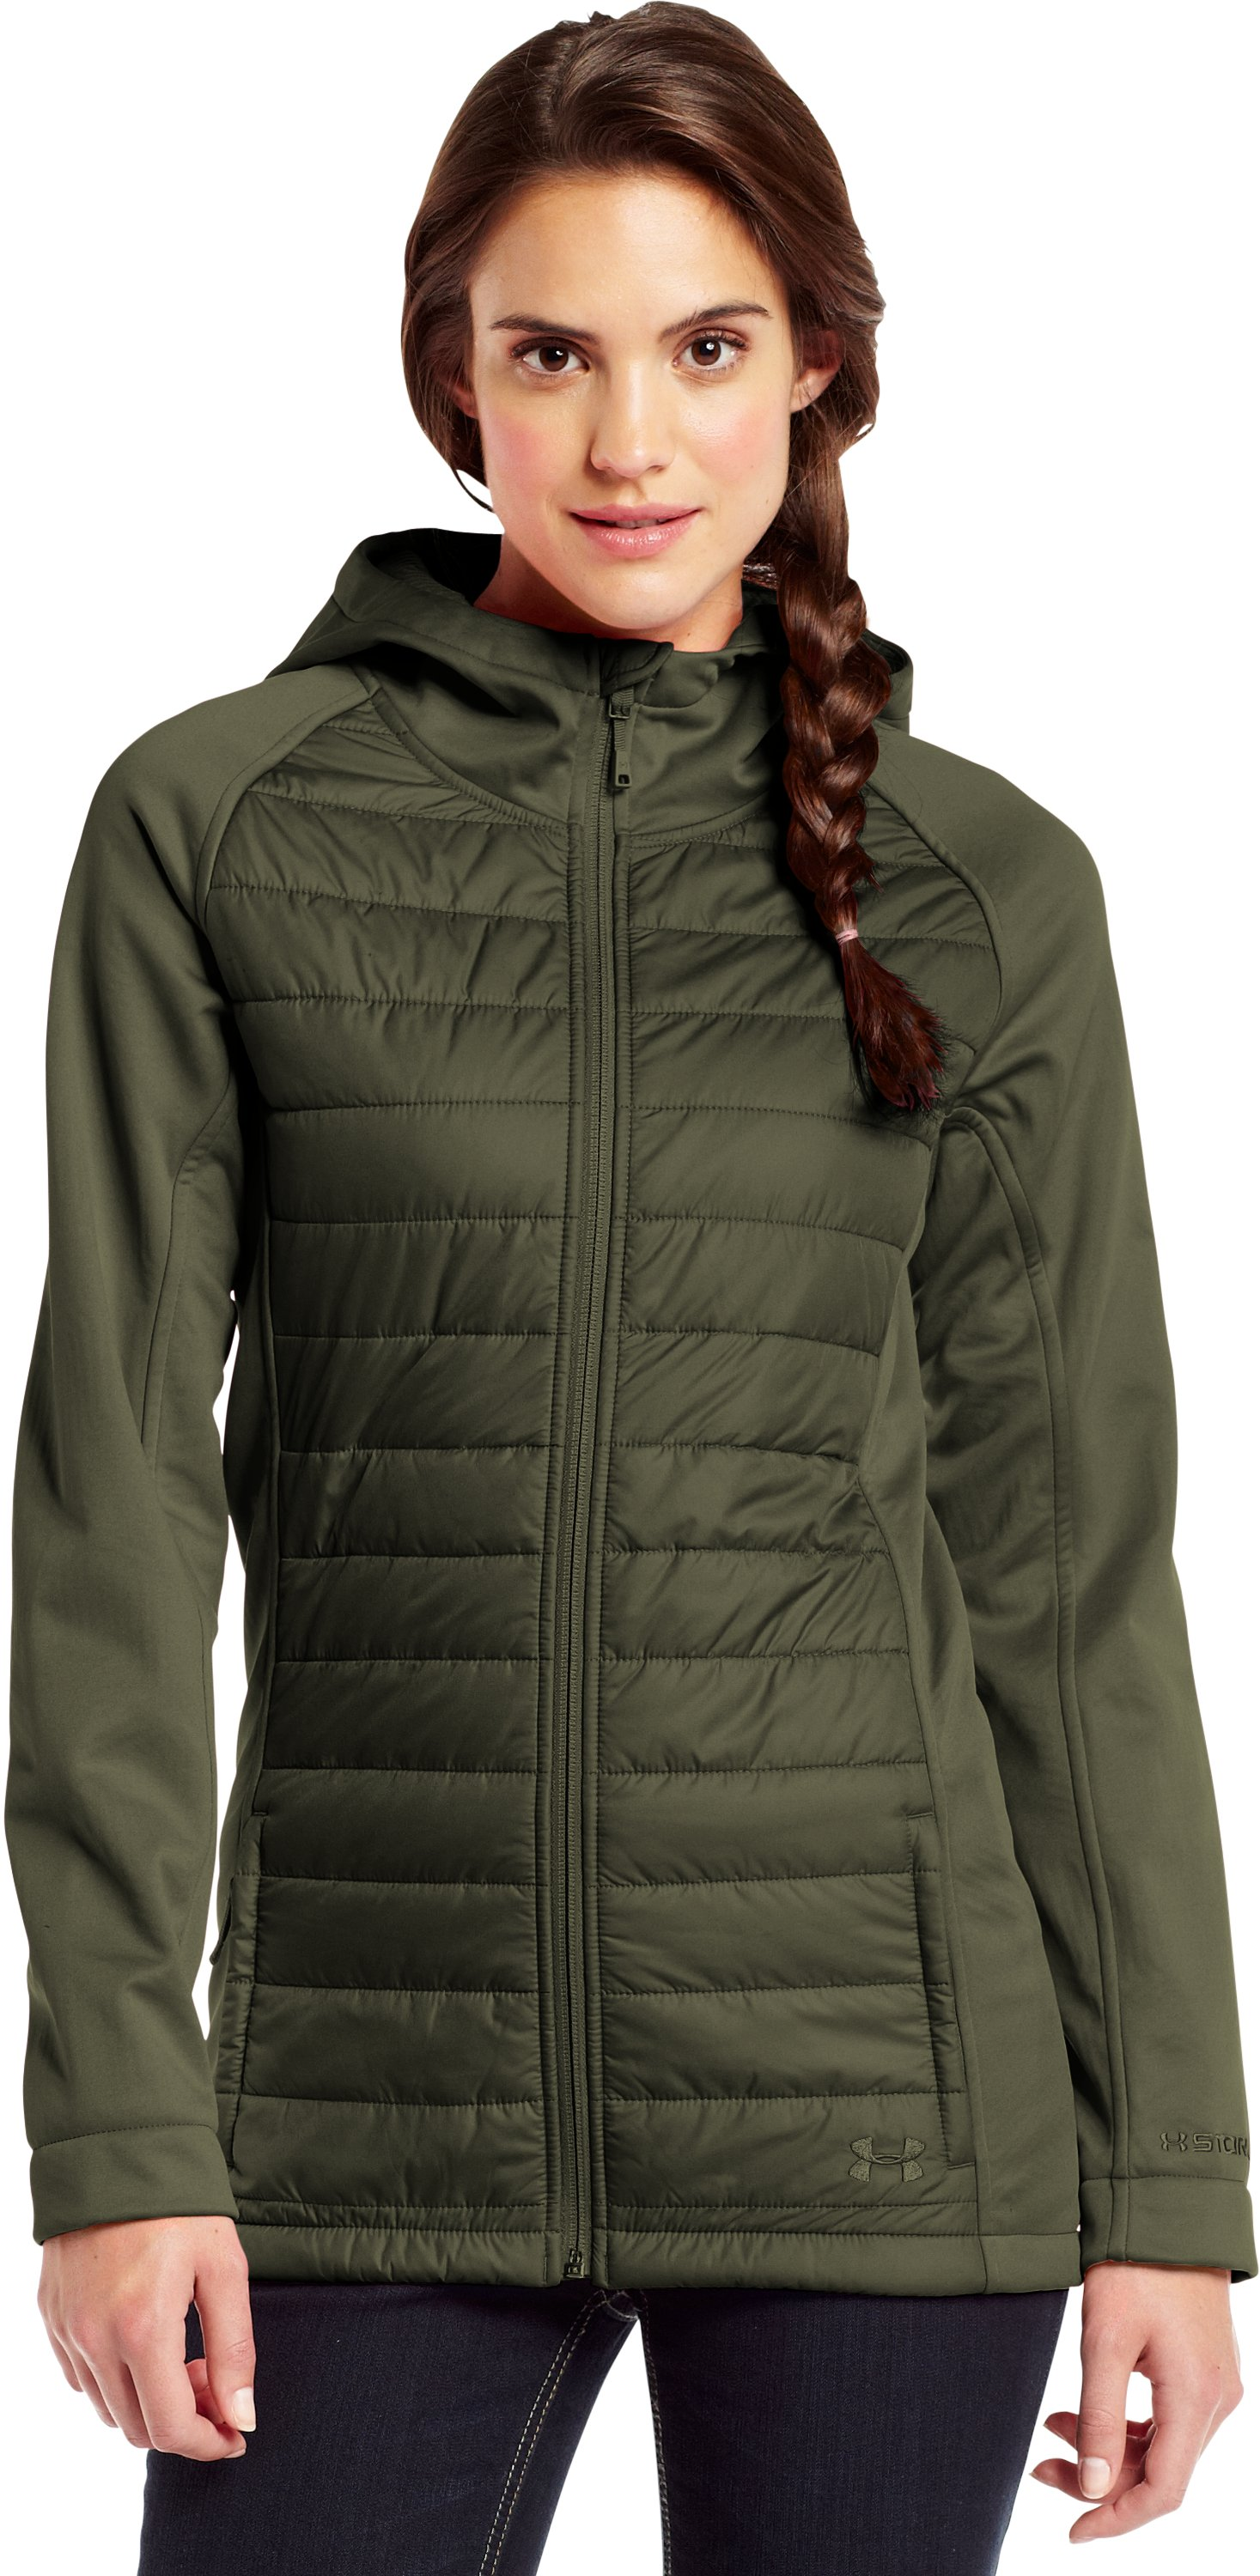 Women's ColdGear® Infrared Werewolf Jacket, GREENHEAD